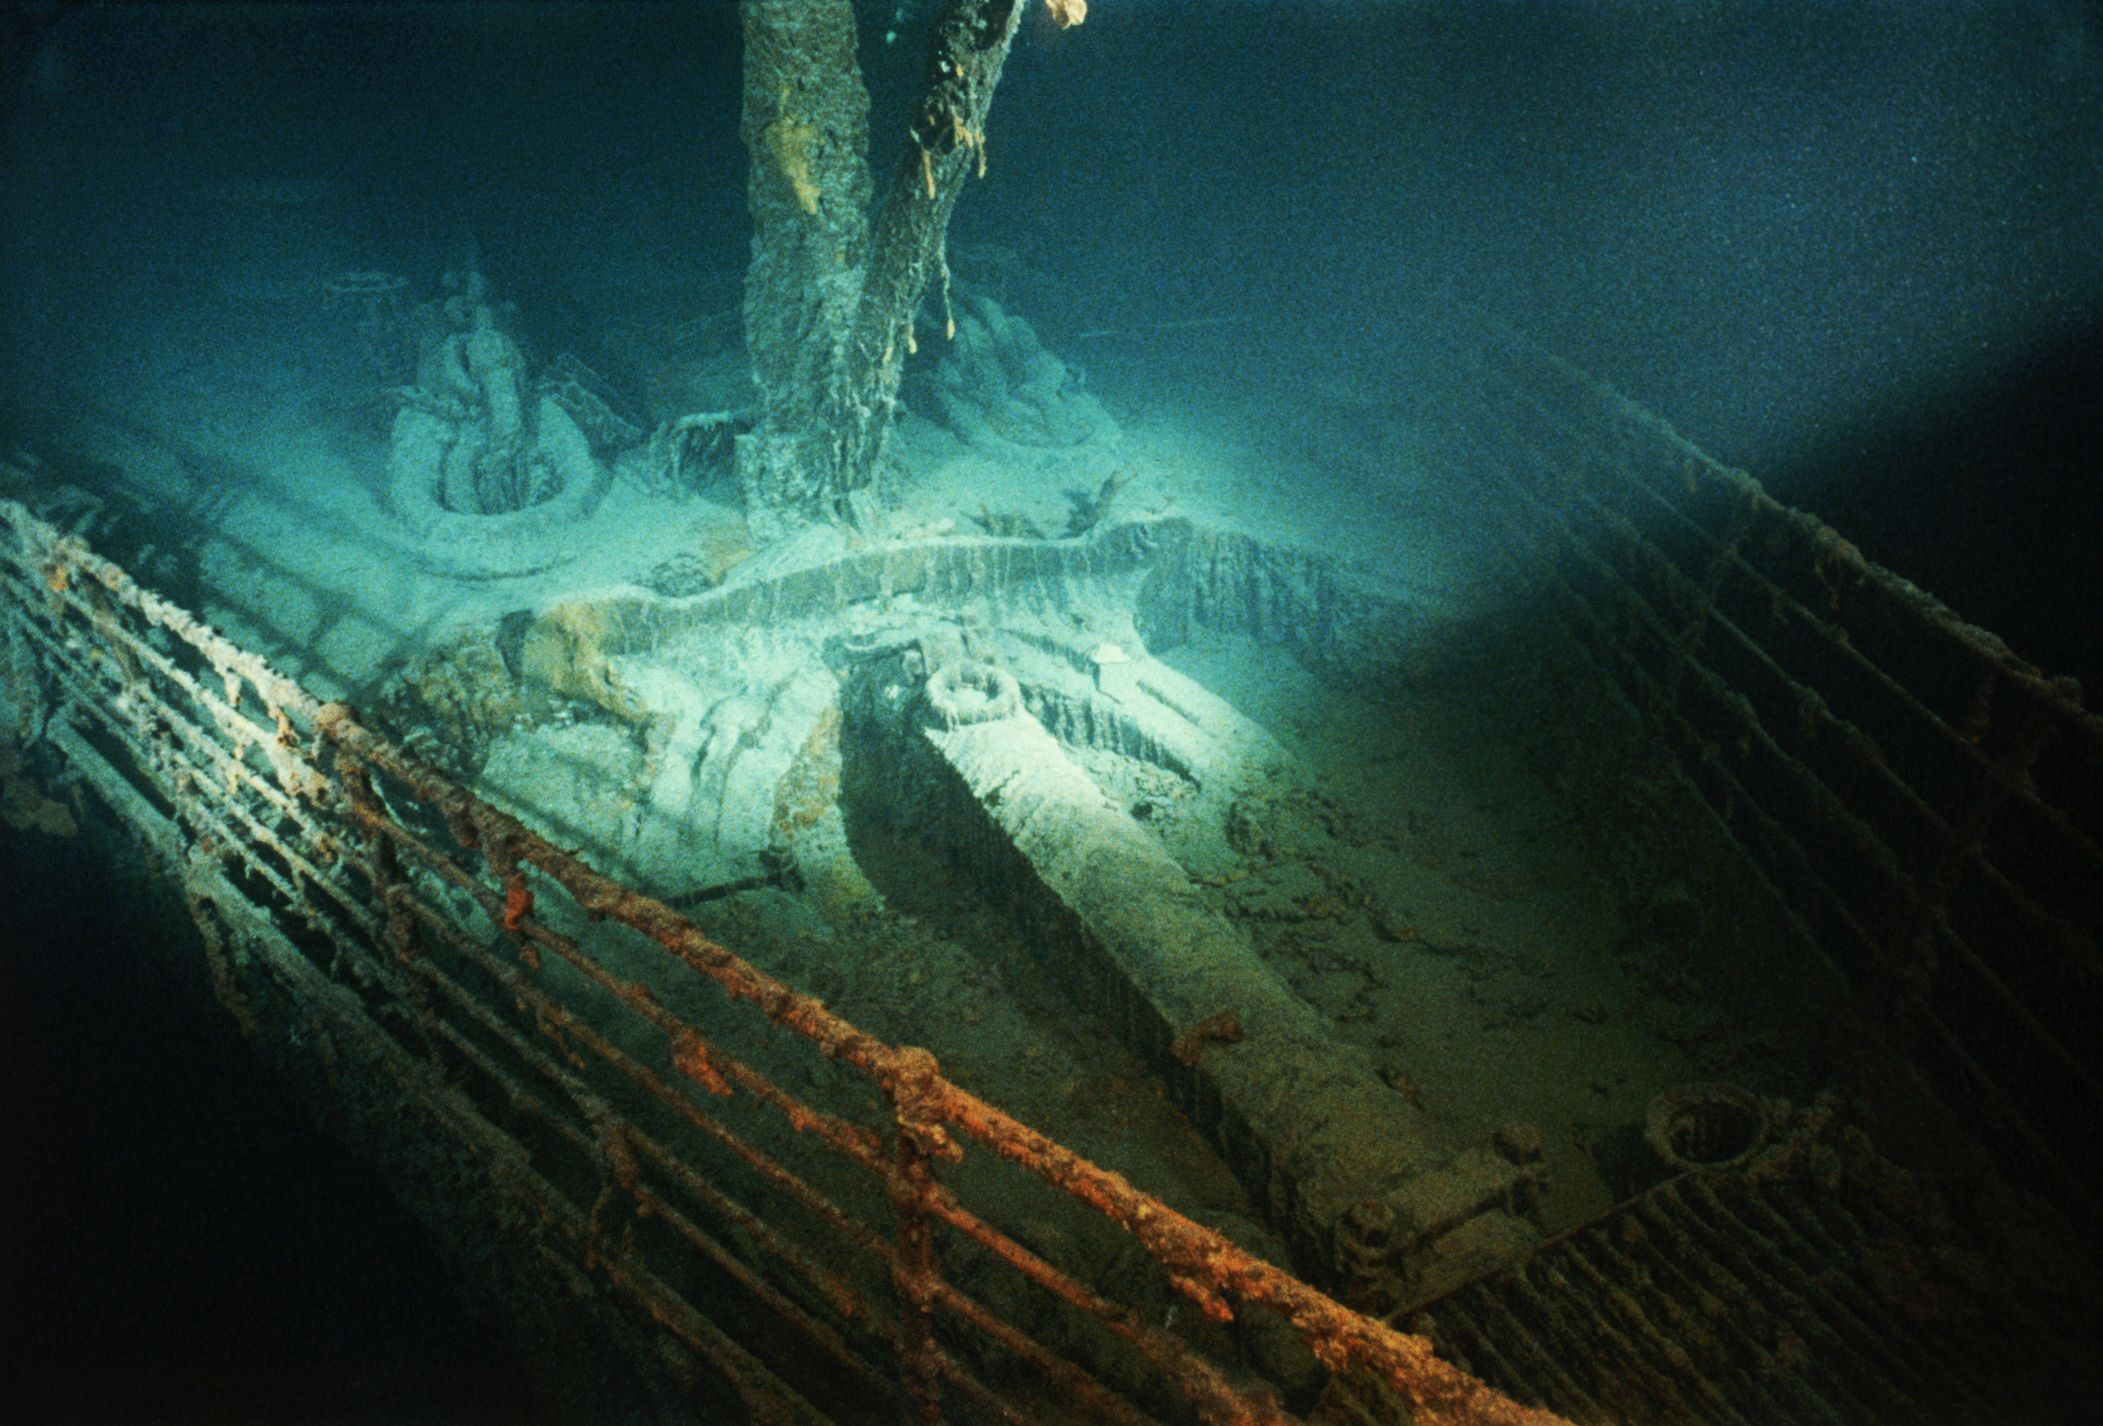 Salvagers Plan to Pry Open the Titanic to Retrieve This Treasure